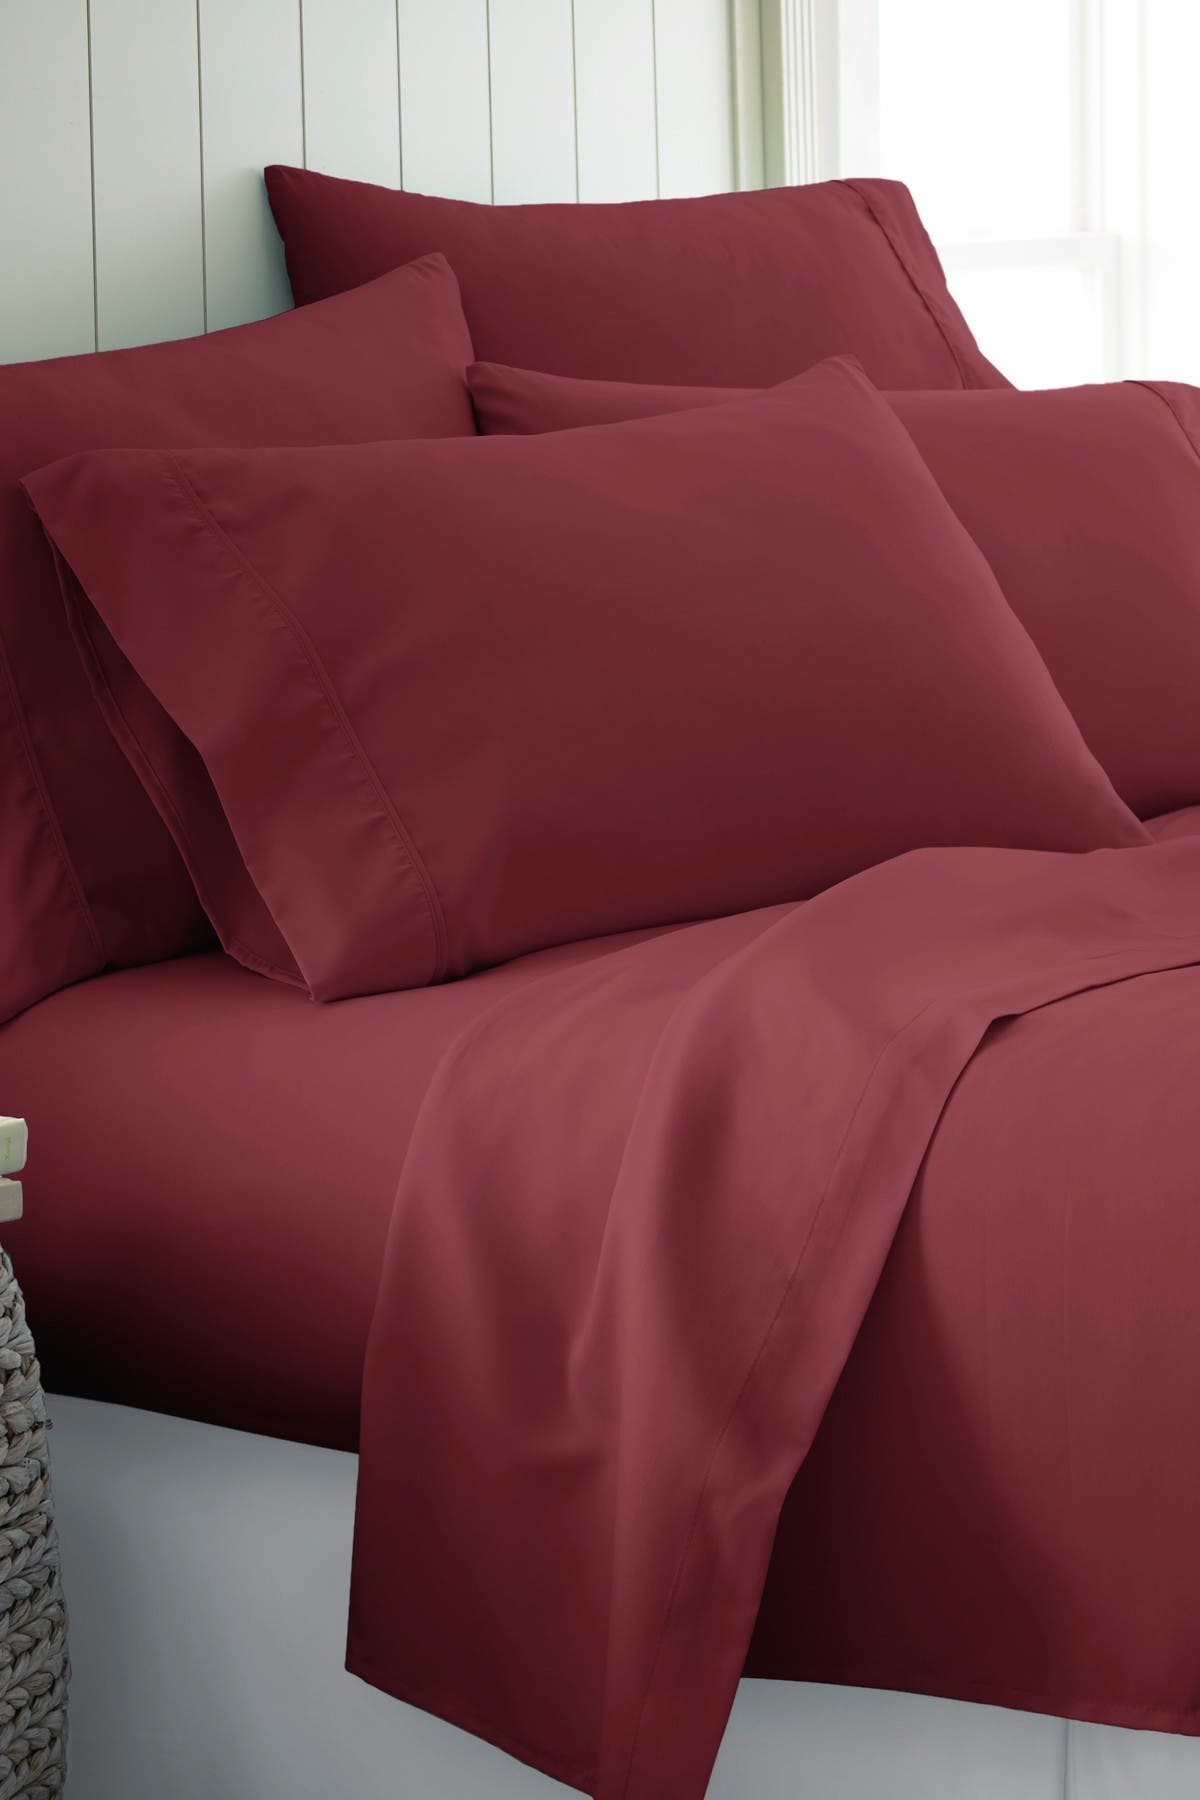 Image of IENJOY HOME California King Hotel Collection Premium Ultra Soft 6-Piece Bed Sheet Set - Burgundy